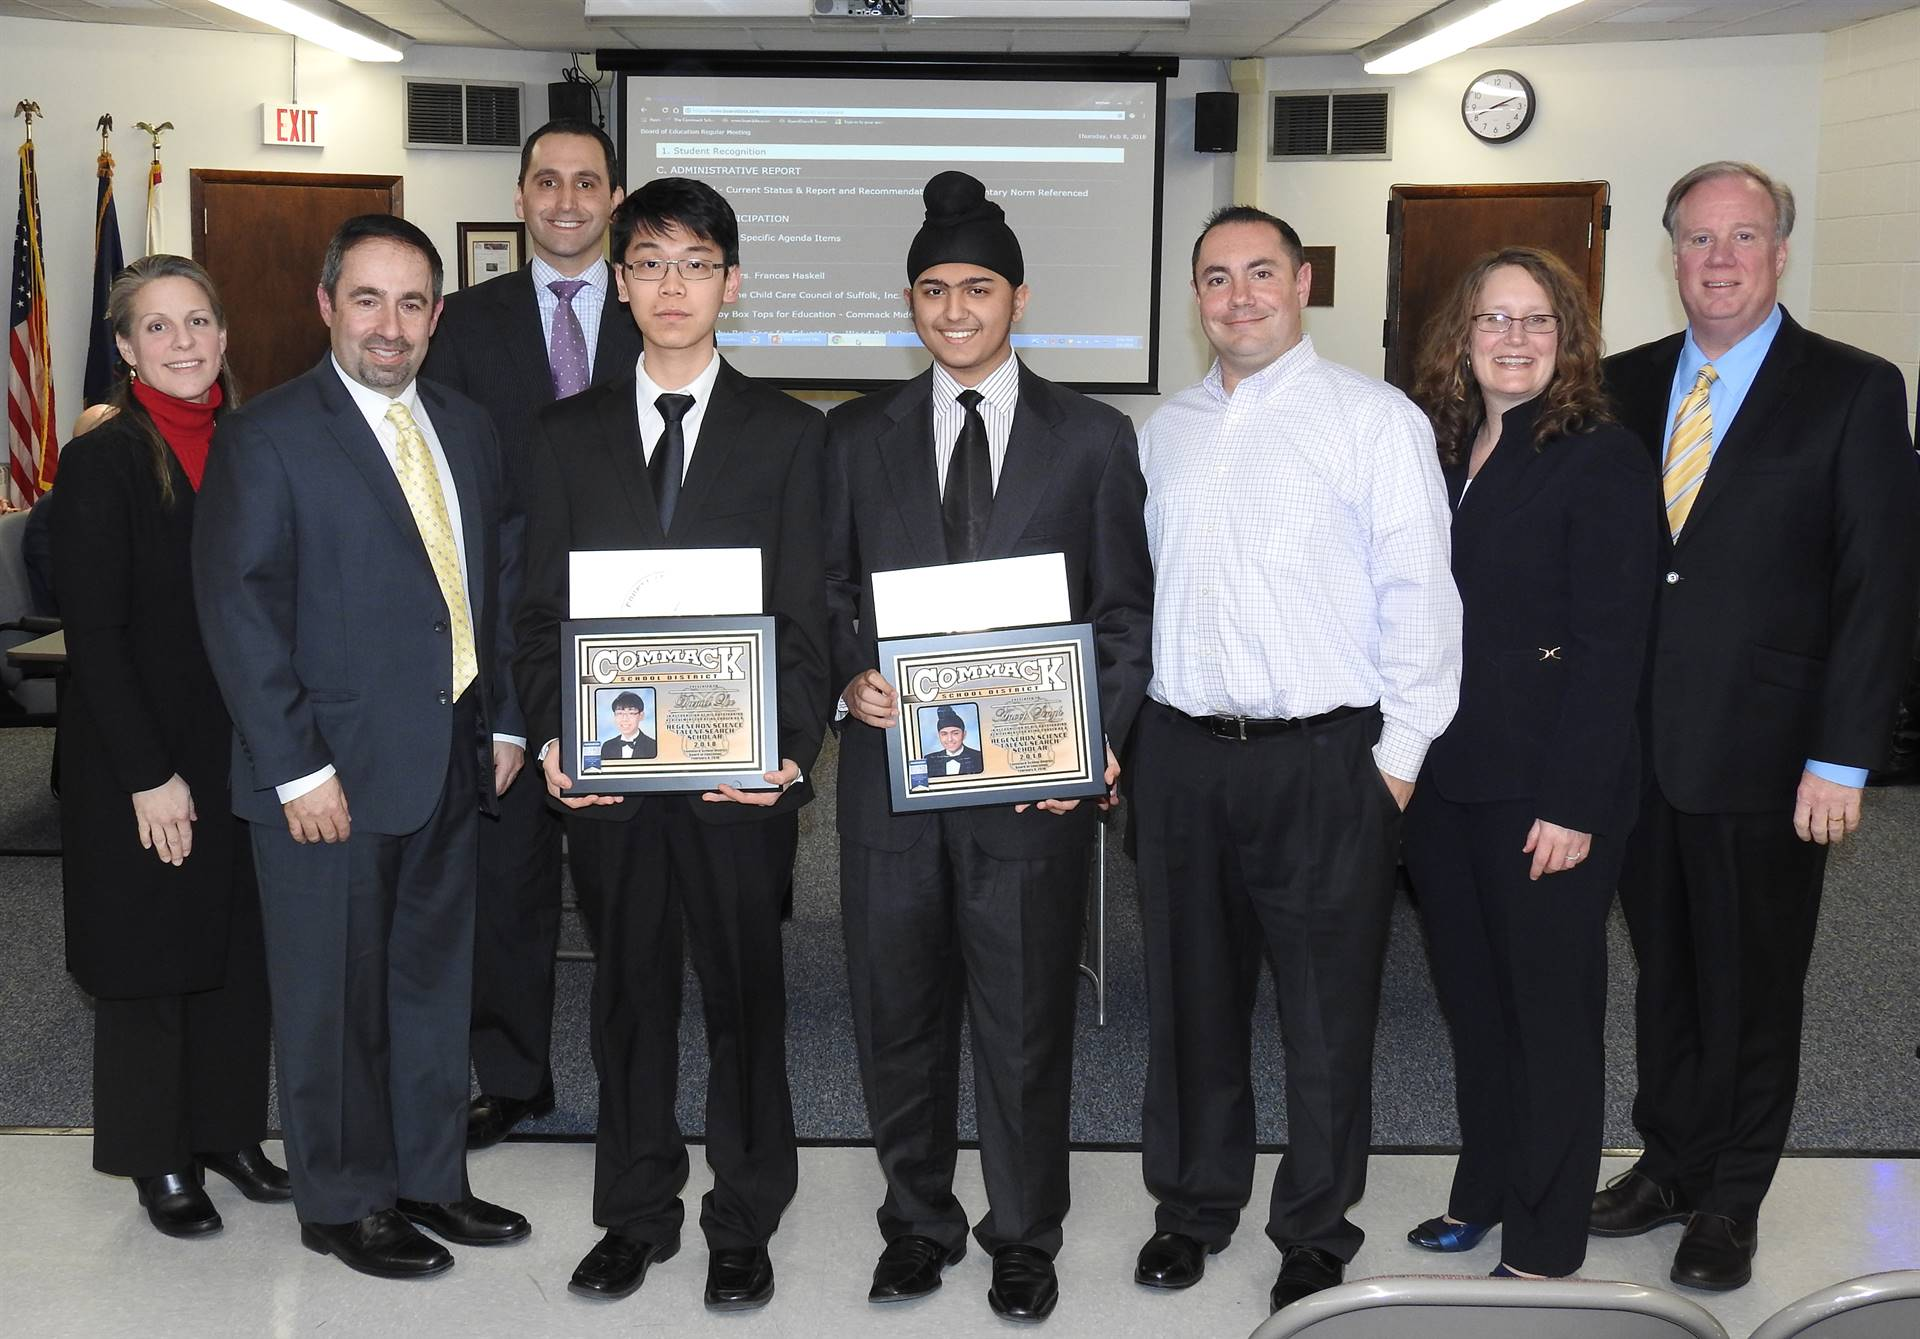 Board of Education and Regeneron Scholars